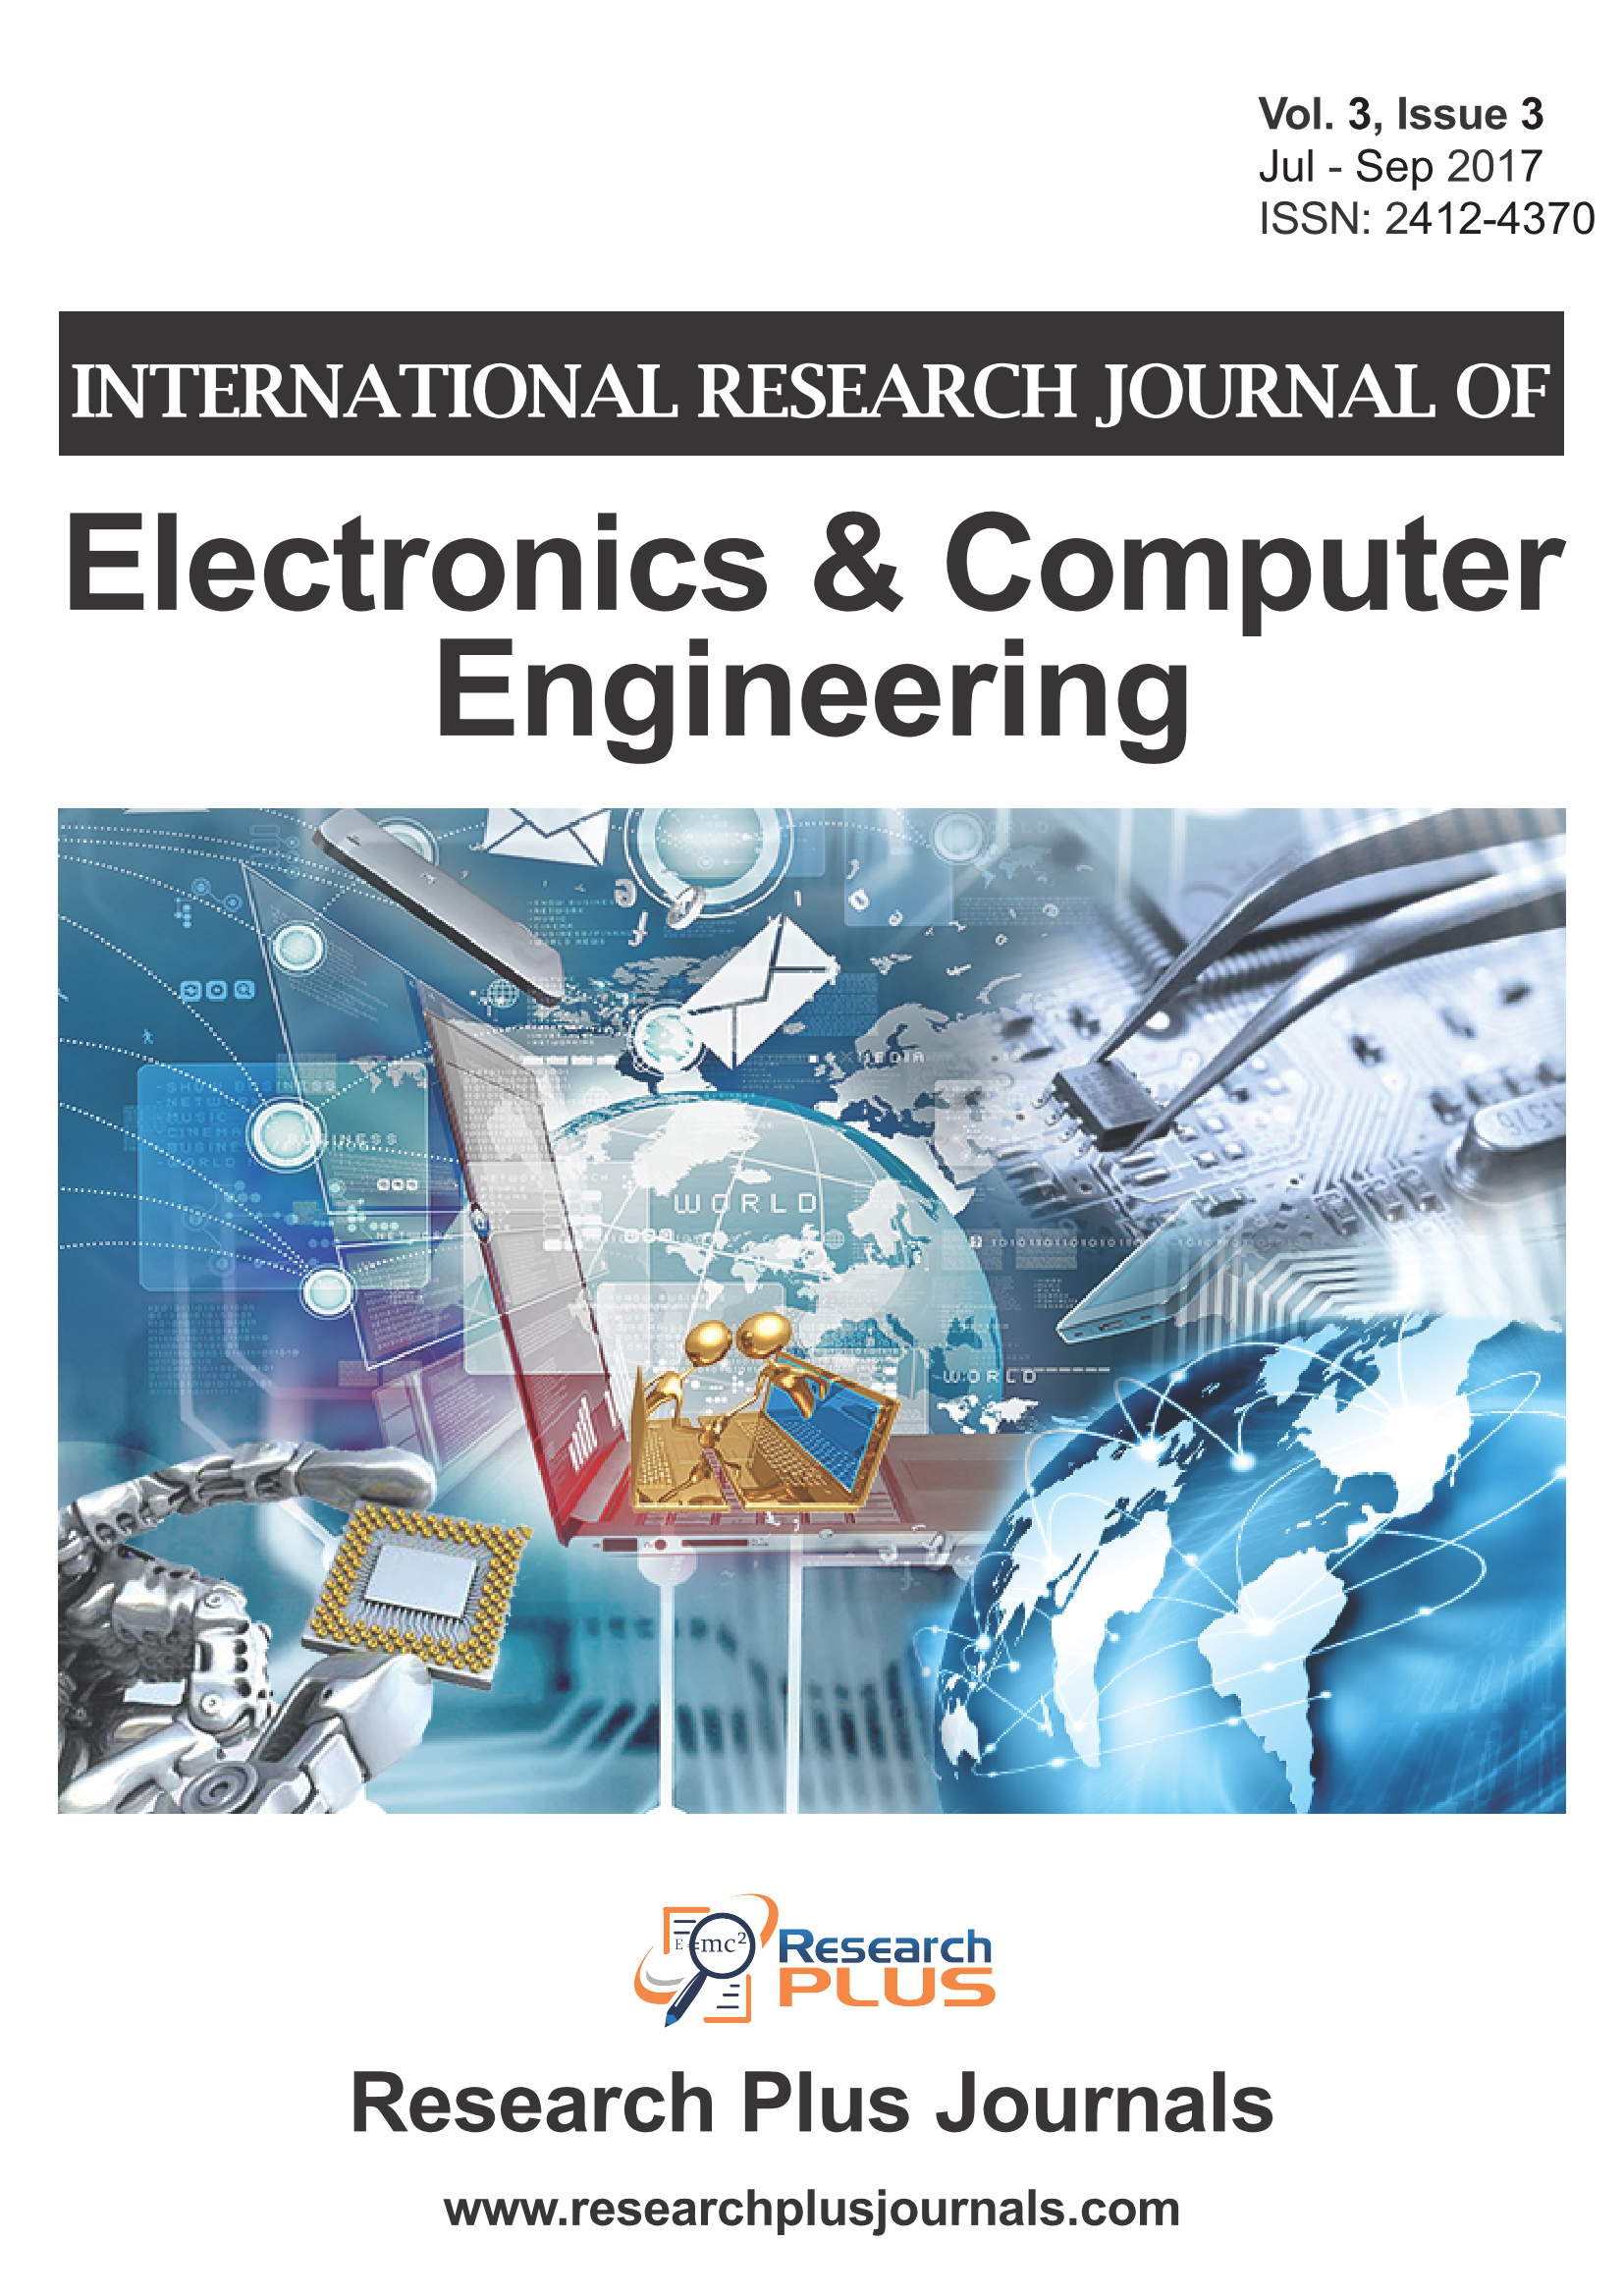 Volume 3, Issue 3, International Research Journal of Electronics & Computer Engineering (IRJECE) (Online ISSN : 2412-4370)